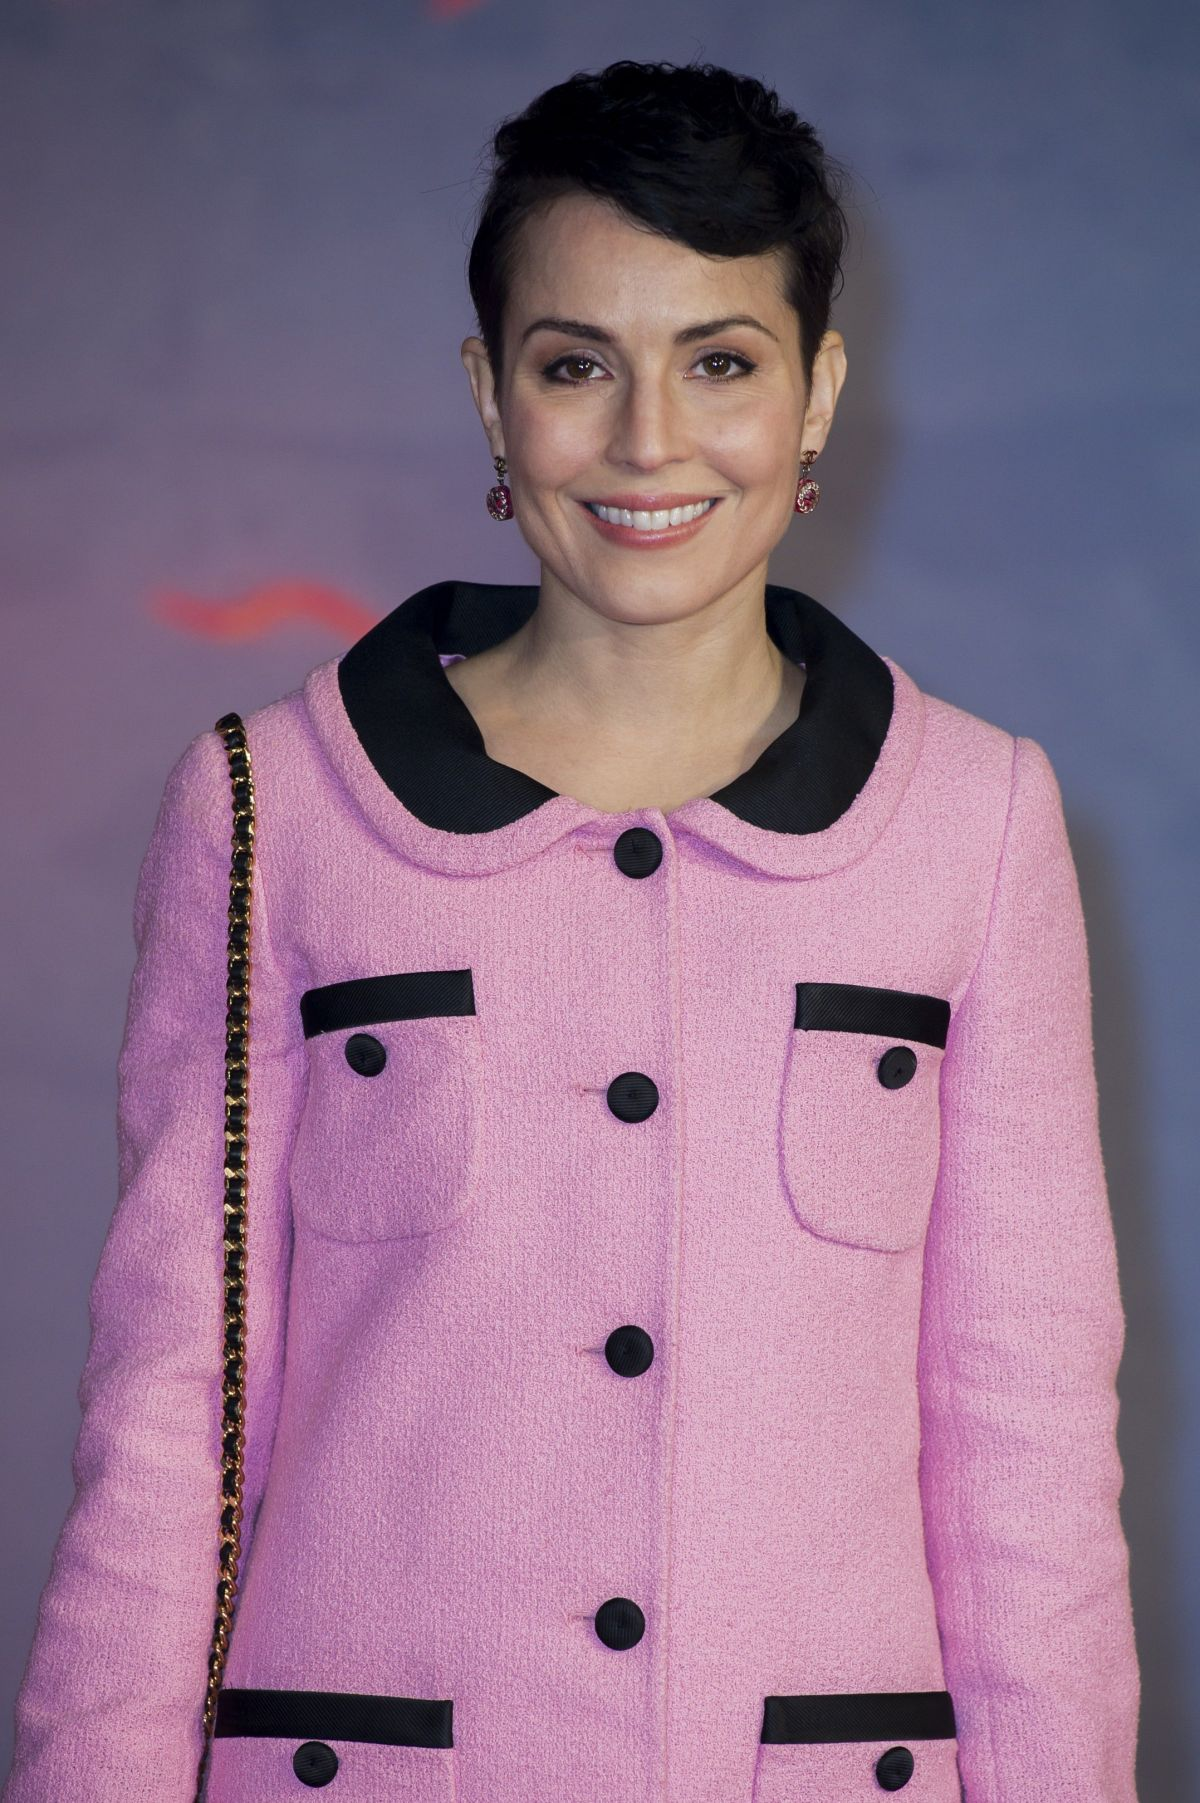 Image Result For How Tall Is Noomi Rapace